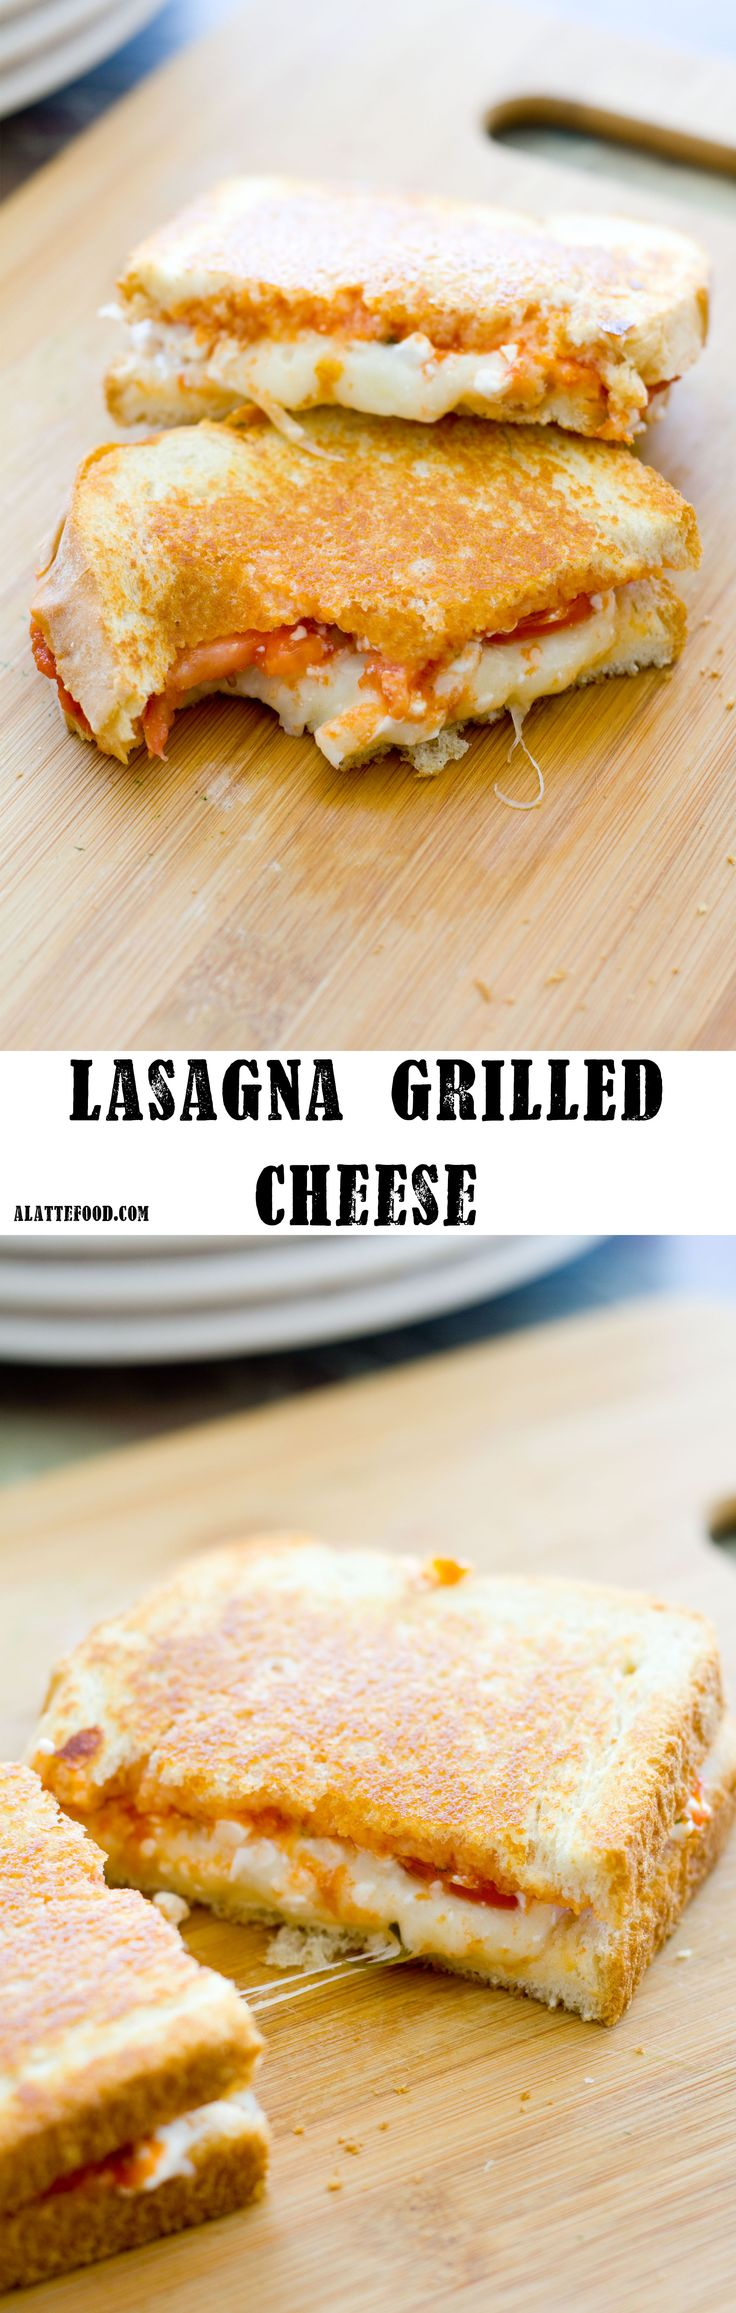 Lasagna Grilled Cheese | OMG. So good.